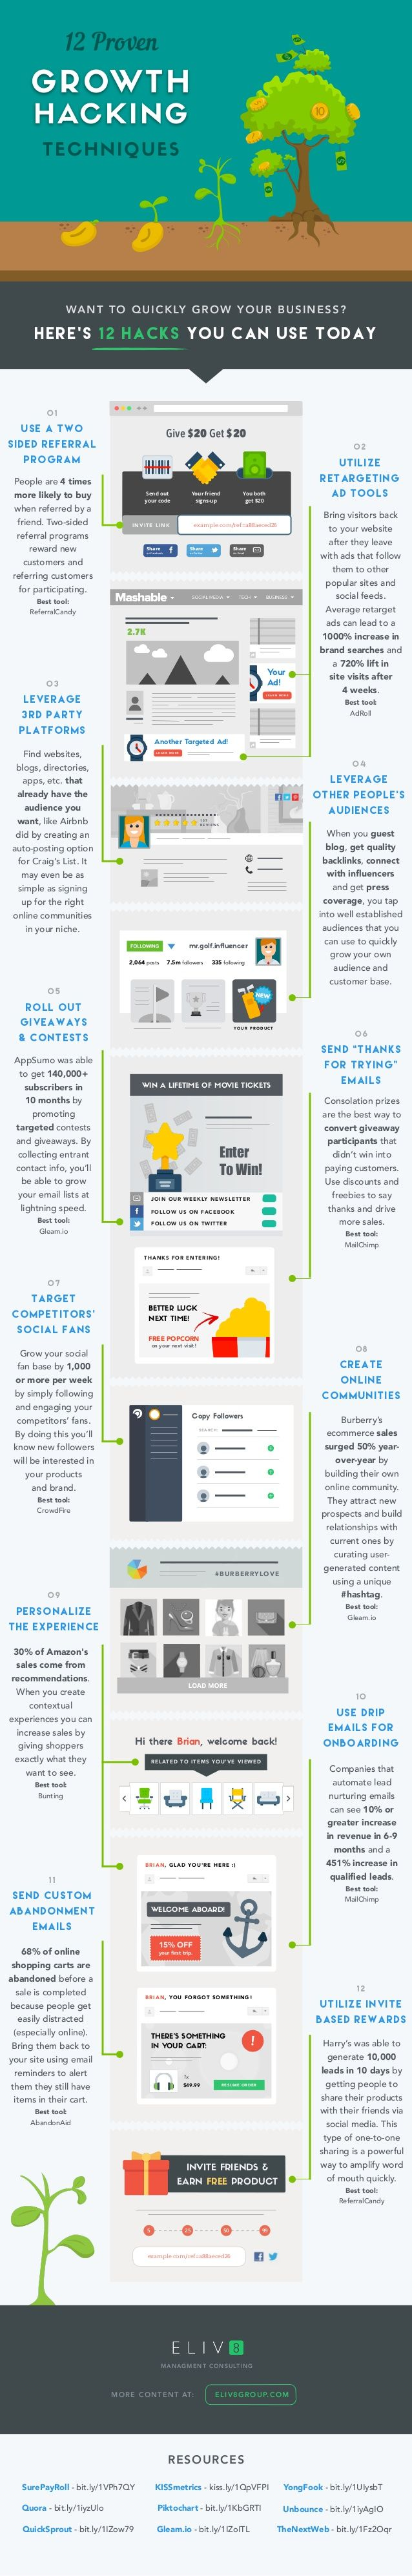 What Are 12 Proven Growth Hacking Tactics For Startups And Business? #infographic